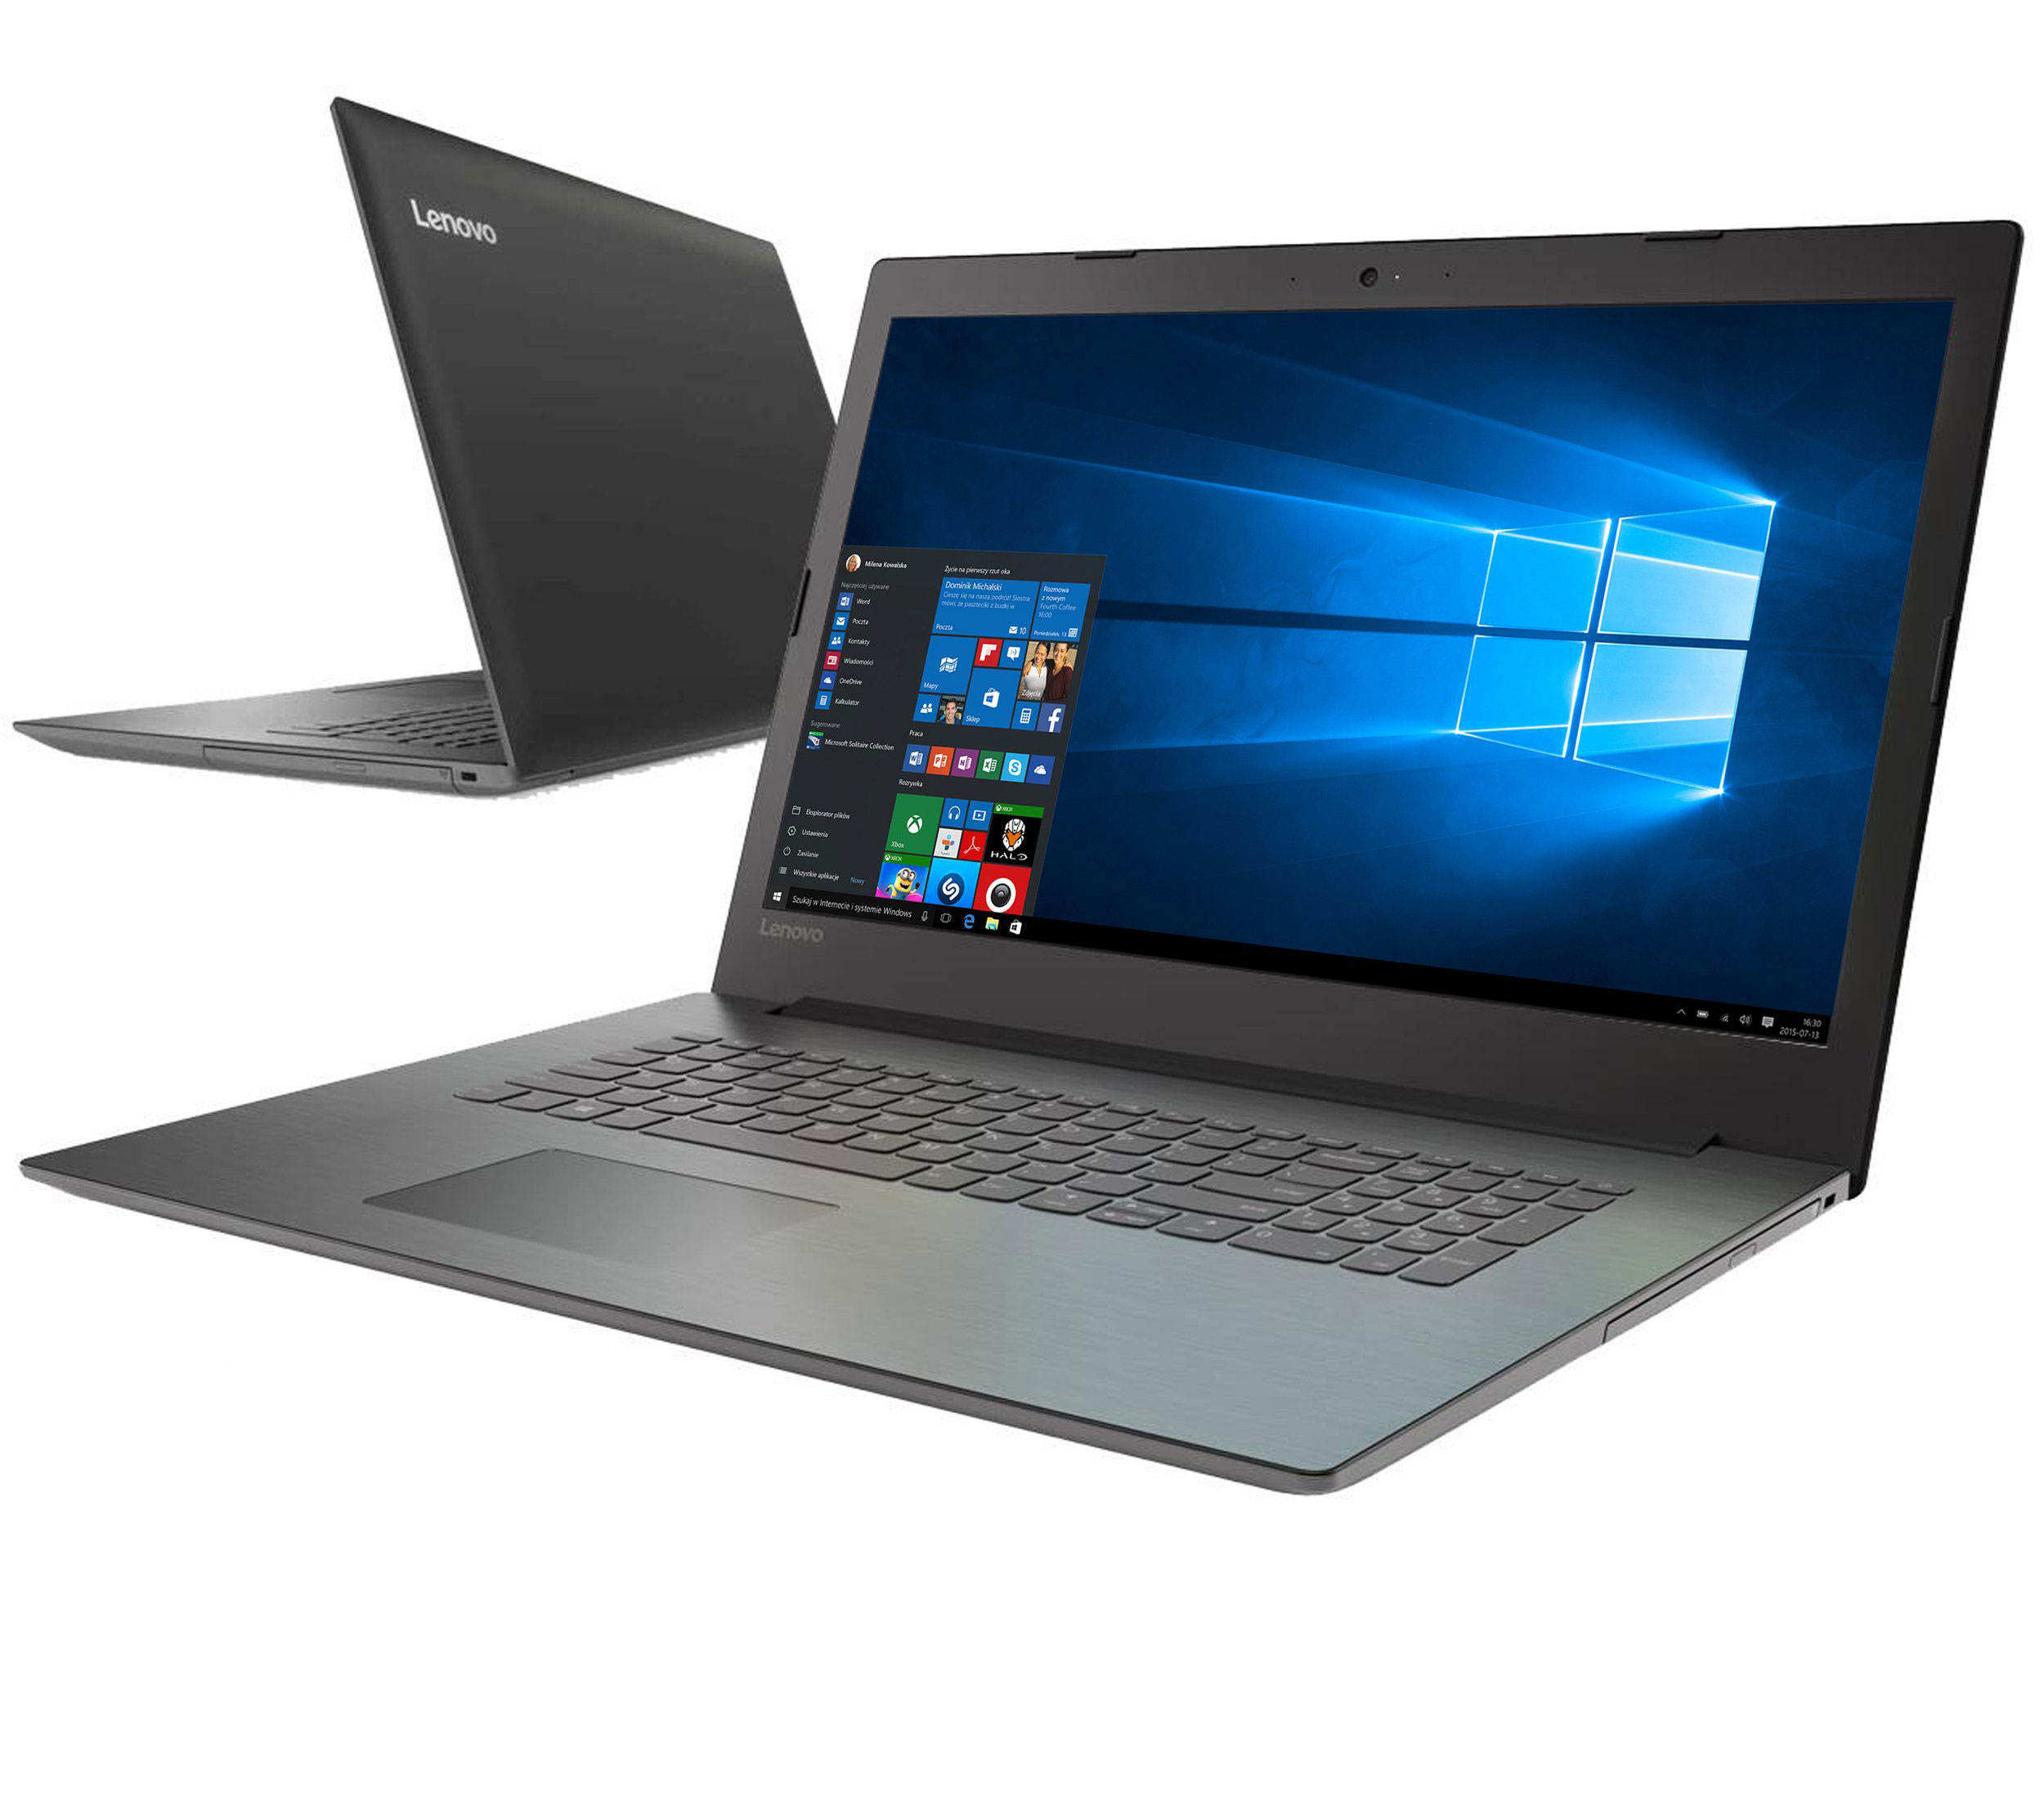 OUTLET Lenovo Ideapad 320 17 2x2 9Ghz 8 256SSD Win